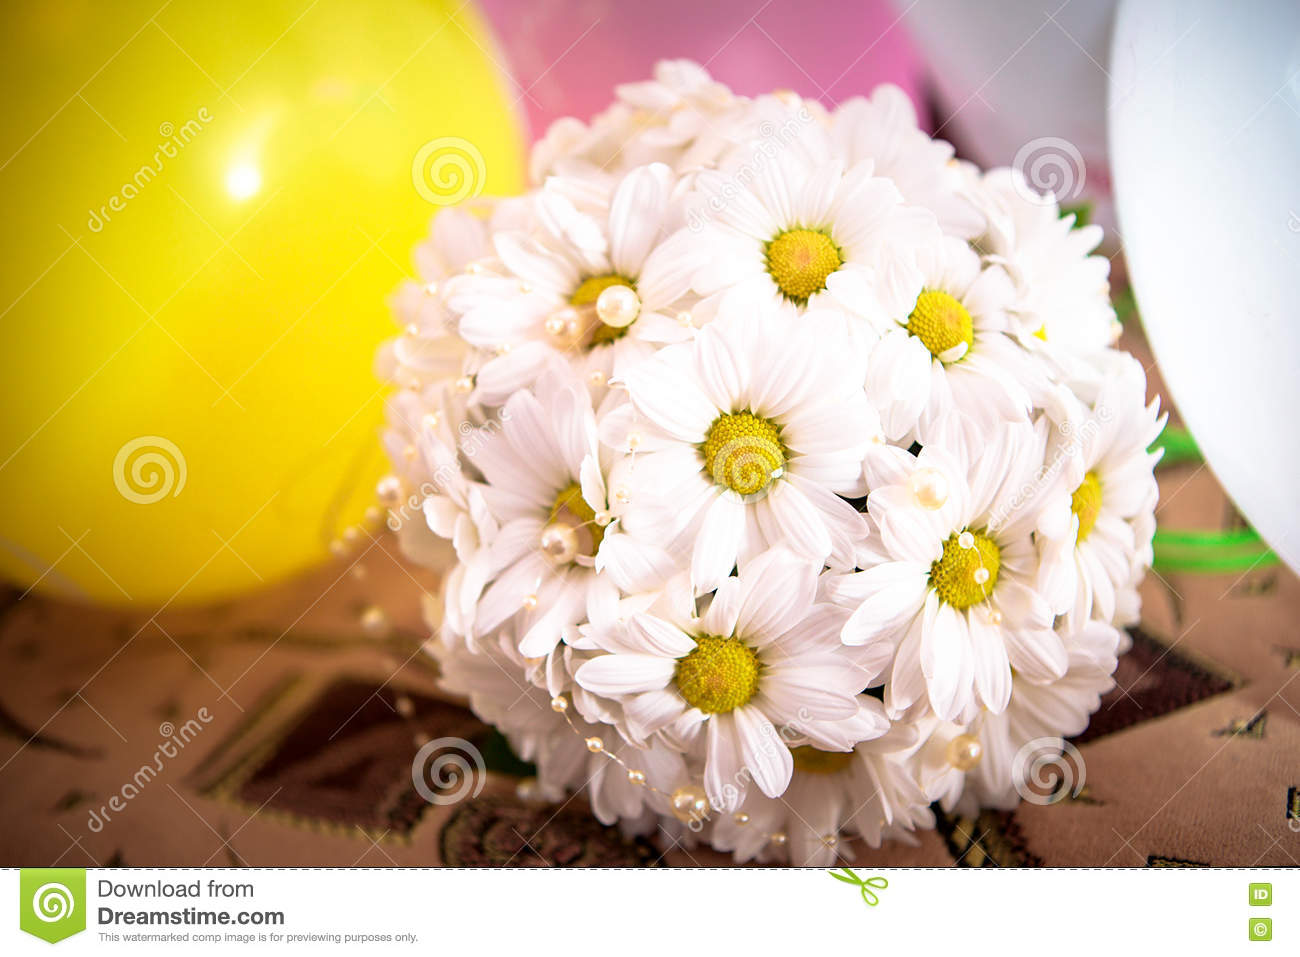 Fiowers stock image image of photos flower daisies 78293059 fiowers beutyflowers daisies white flowers white daisies pretty flowers photos of flowers flower for the holiday mightylinksfo